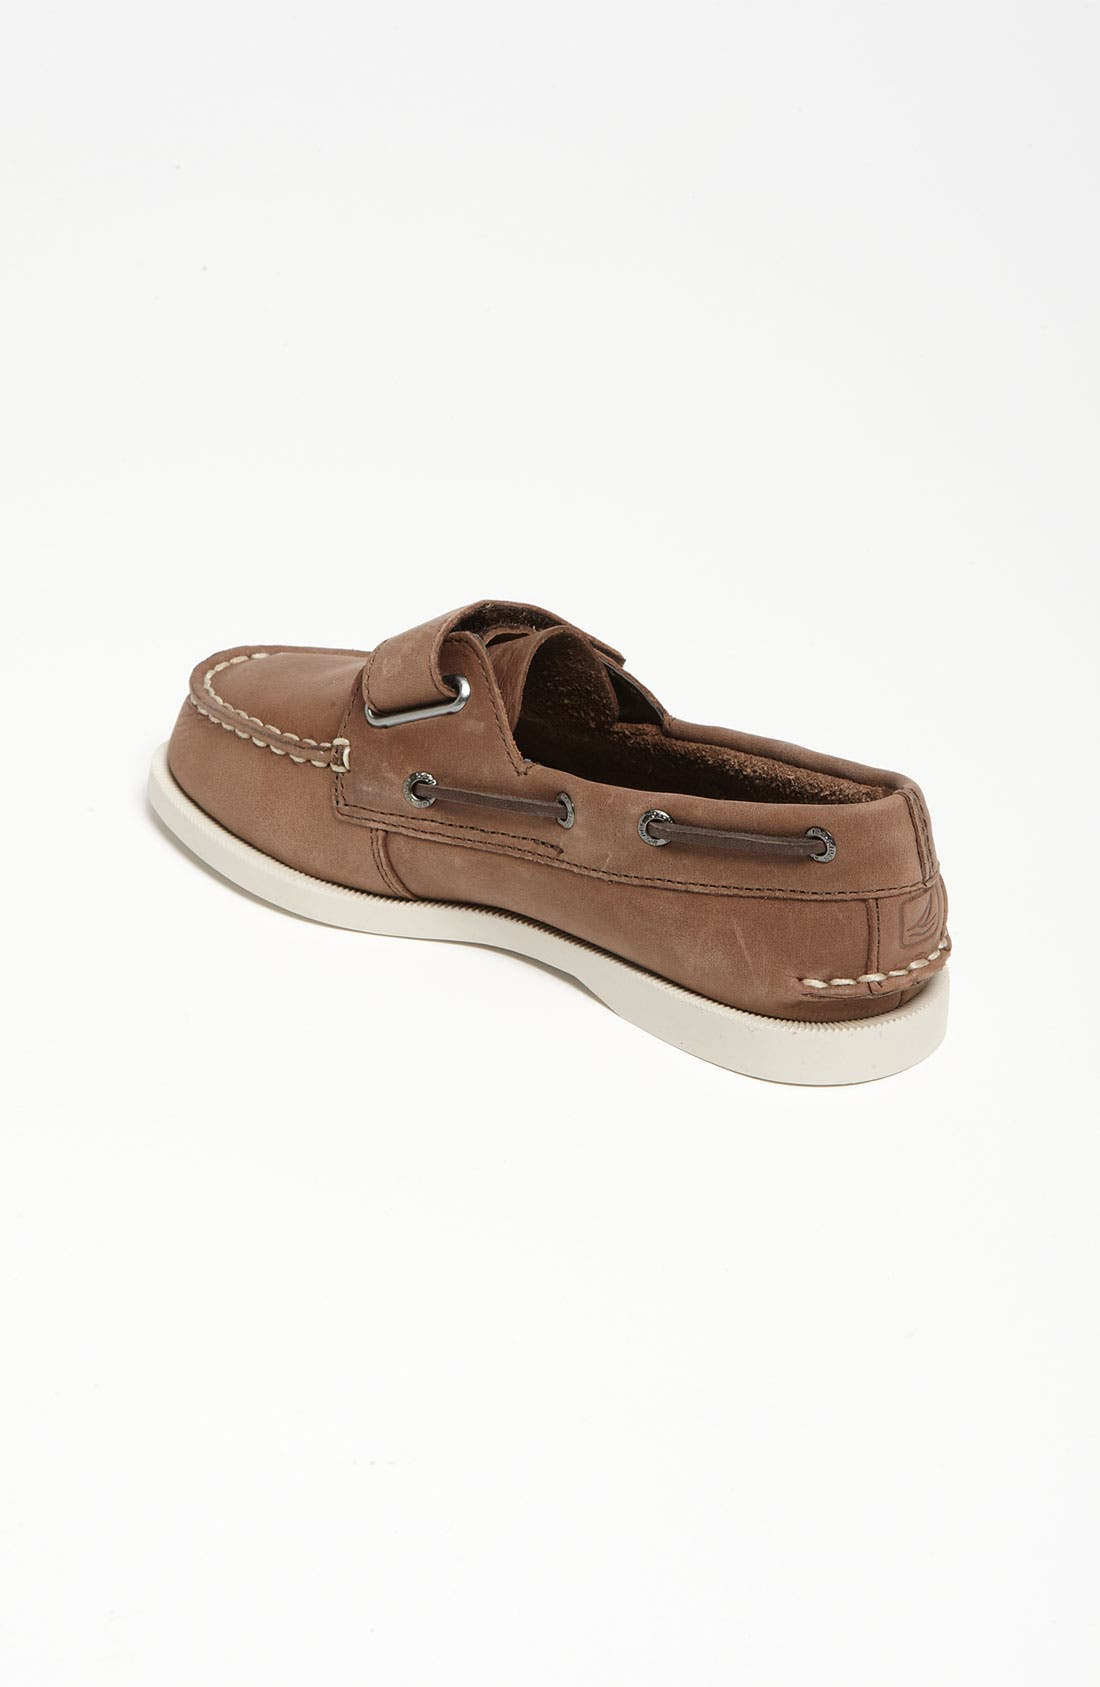 Sperry Top-Sider<sup>®</sup> Kids 'Authentic Original' Boat Shoe,                             Alternate thumbnail 3, color,                             BROWN